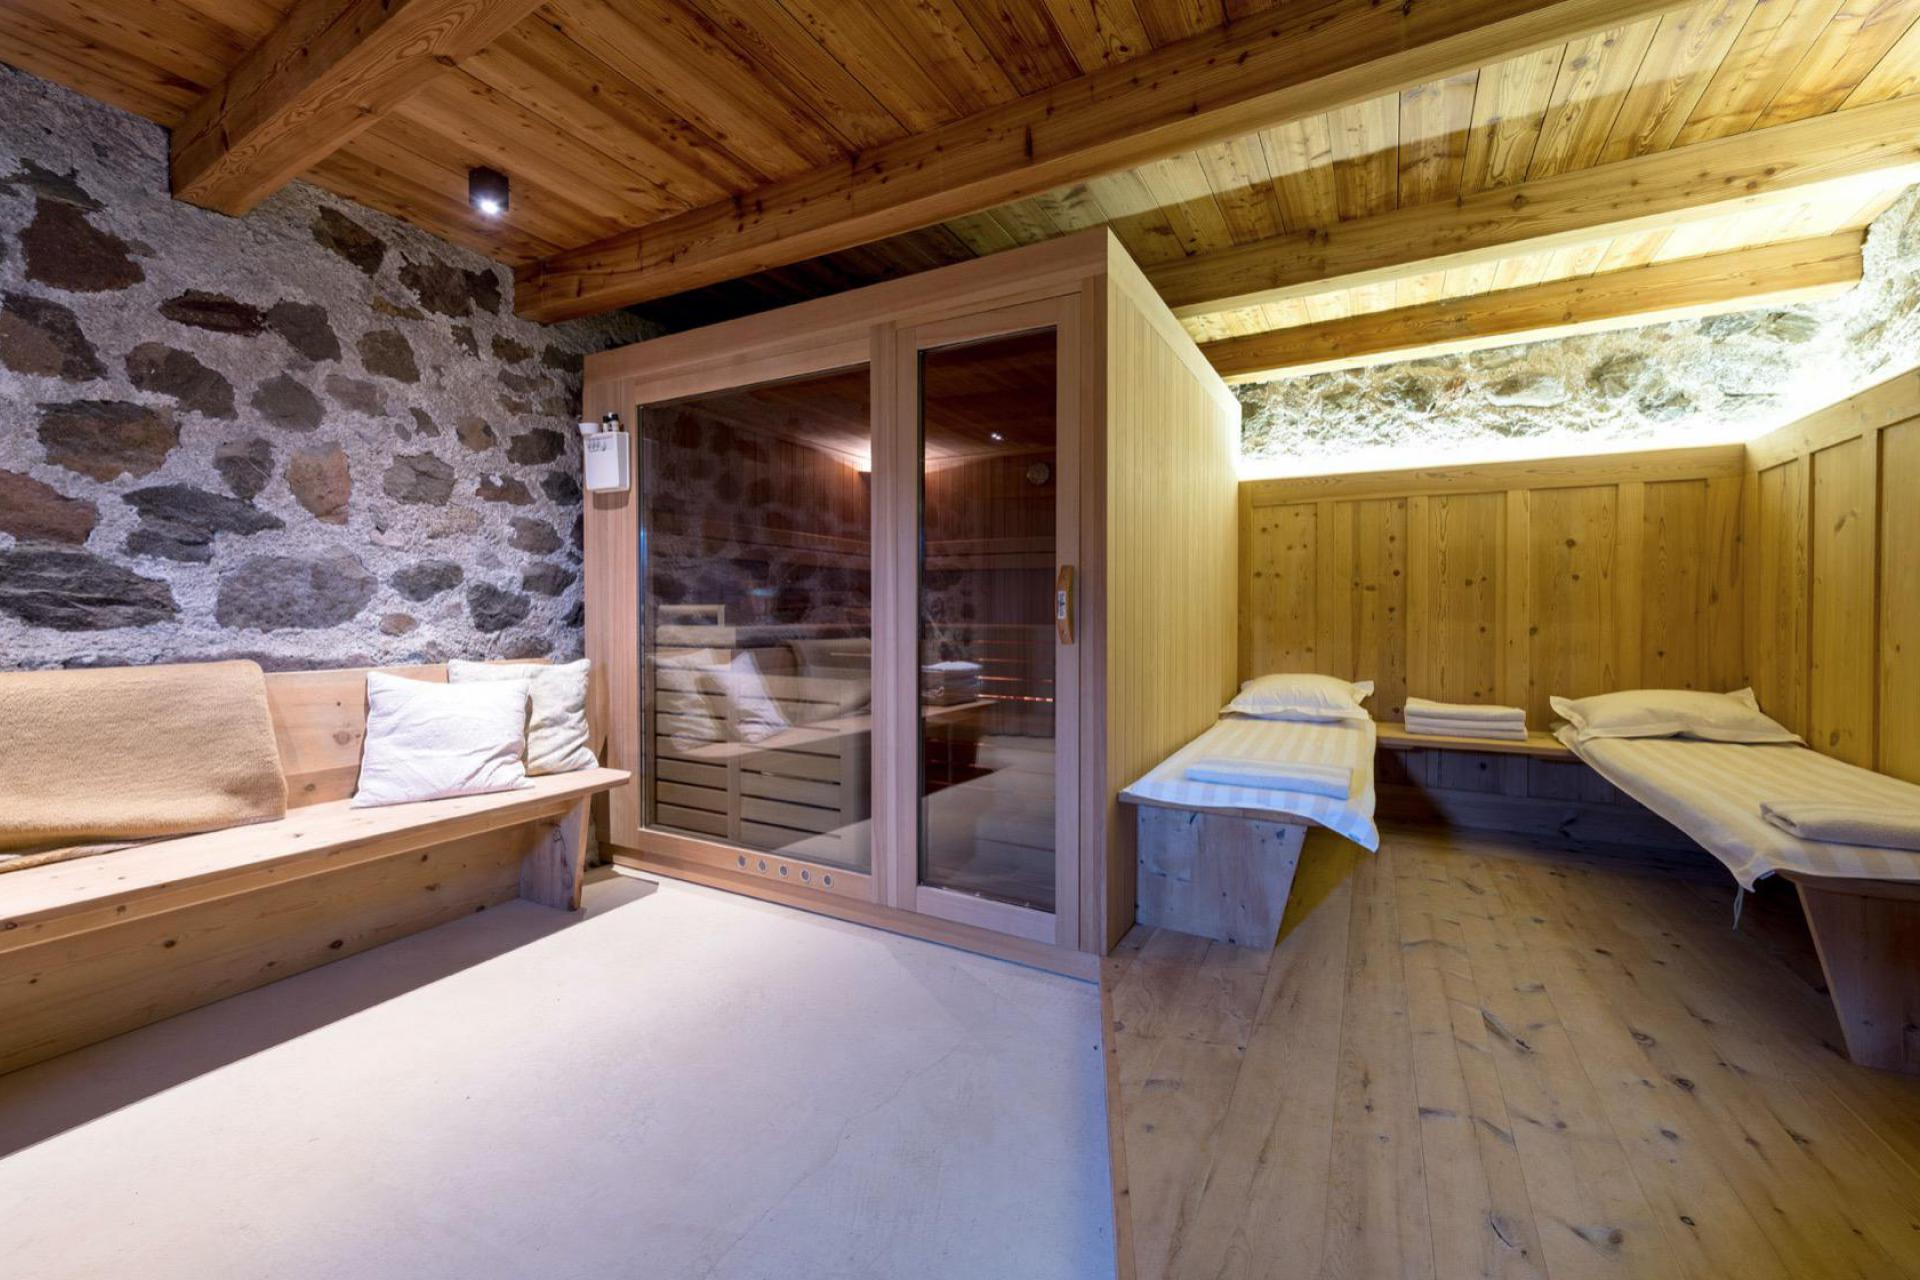 Agriturismo Dolomites Luxury agriturismo with B&B rooms and Sudtiroler hospitality